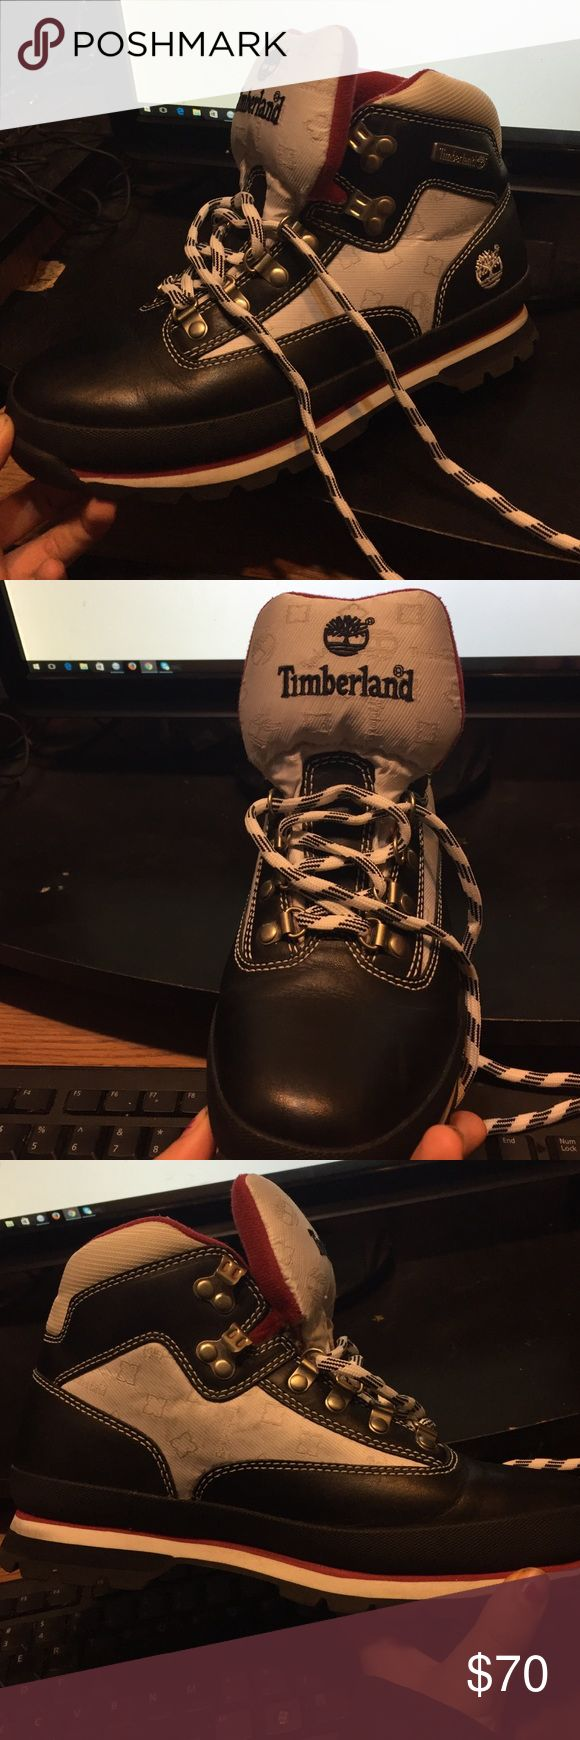 White and blue timberland boots Old style, used, really good condition. Timberland Shoes Winter & Rain Boots